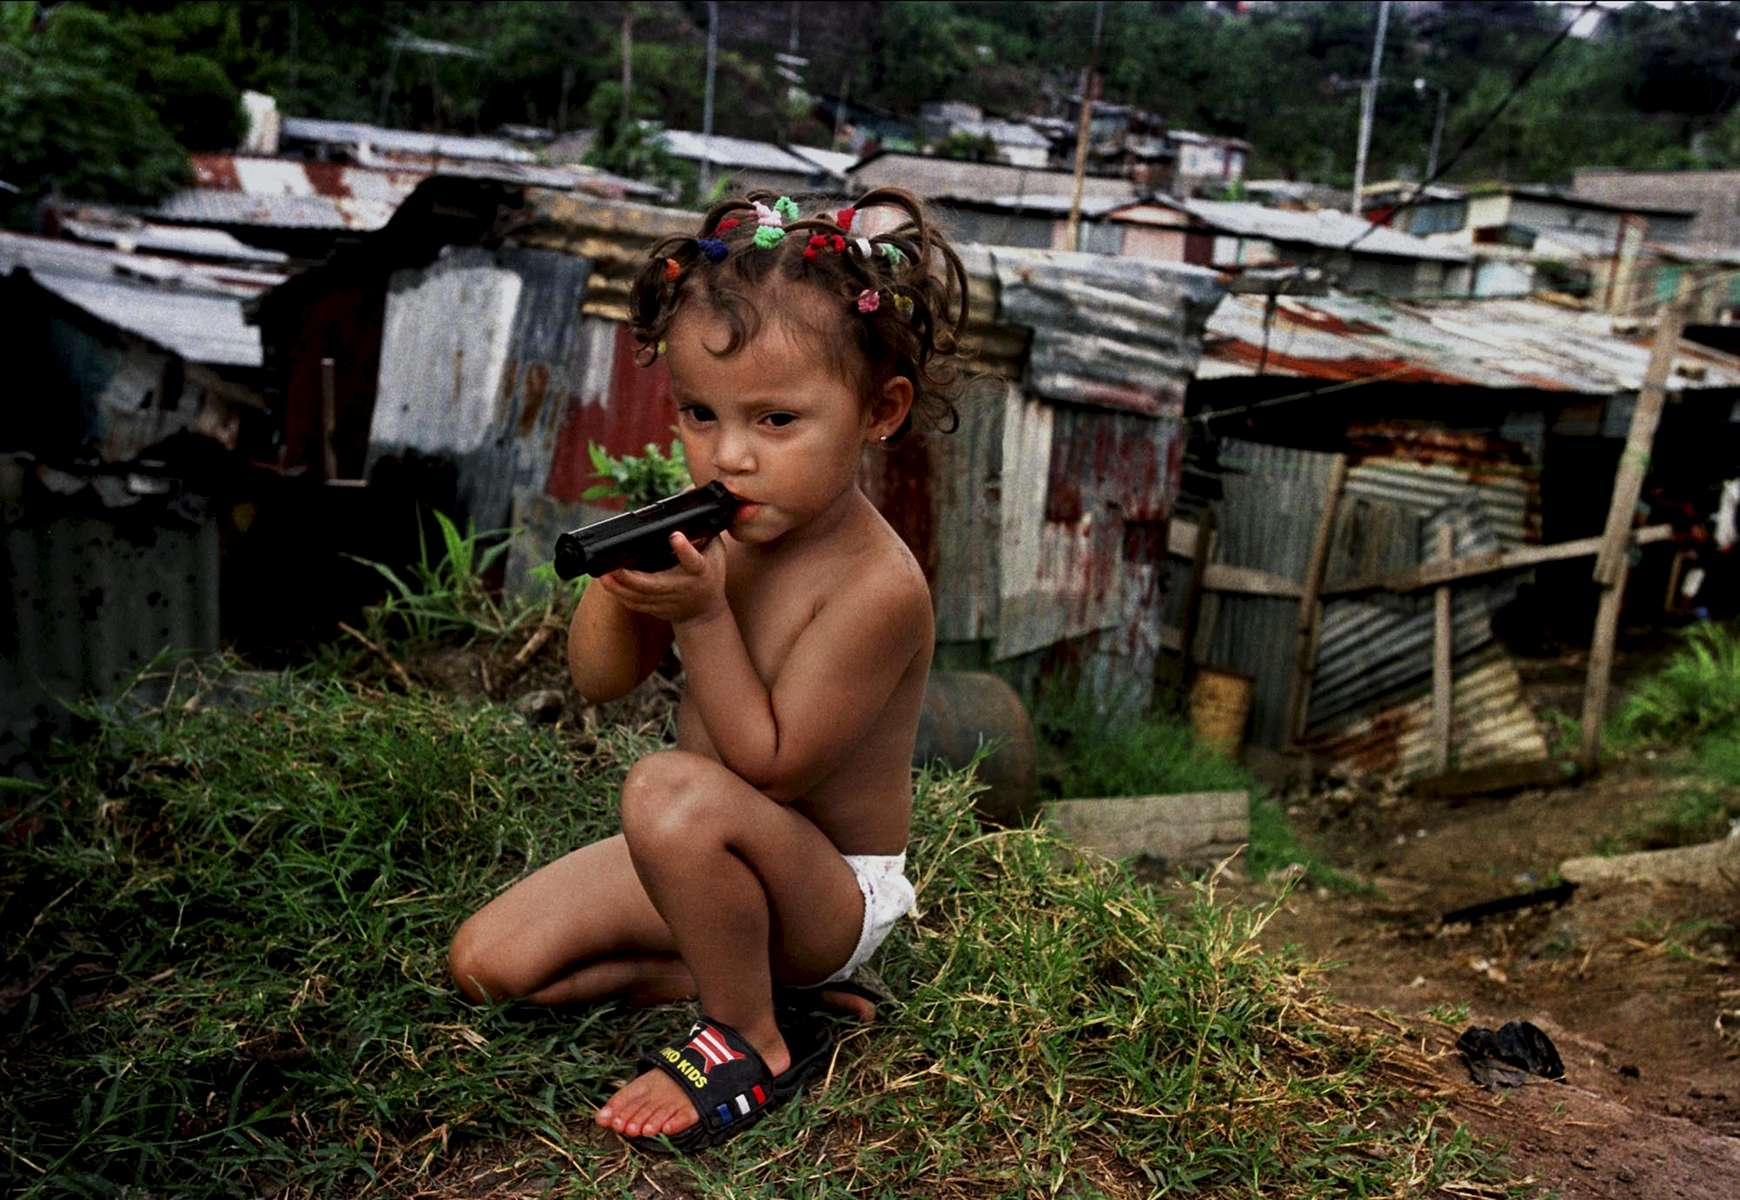 A girl plays unattended in La Carpio one afternoon on a hill overlooking the village. La Carpio is a Nicaraguan refuge community just outside of San Jose which is considered one of the most dangerous areas in Costa Rica.